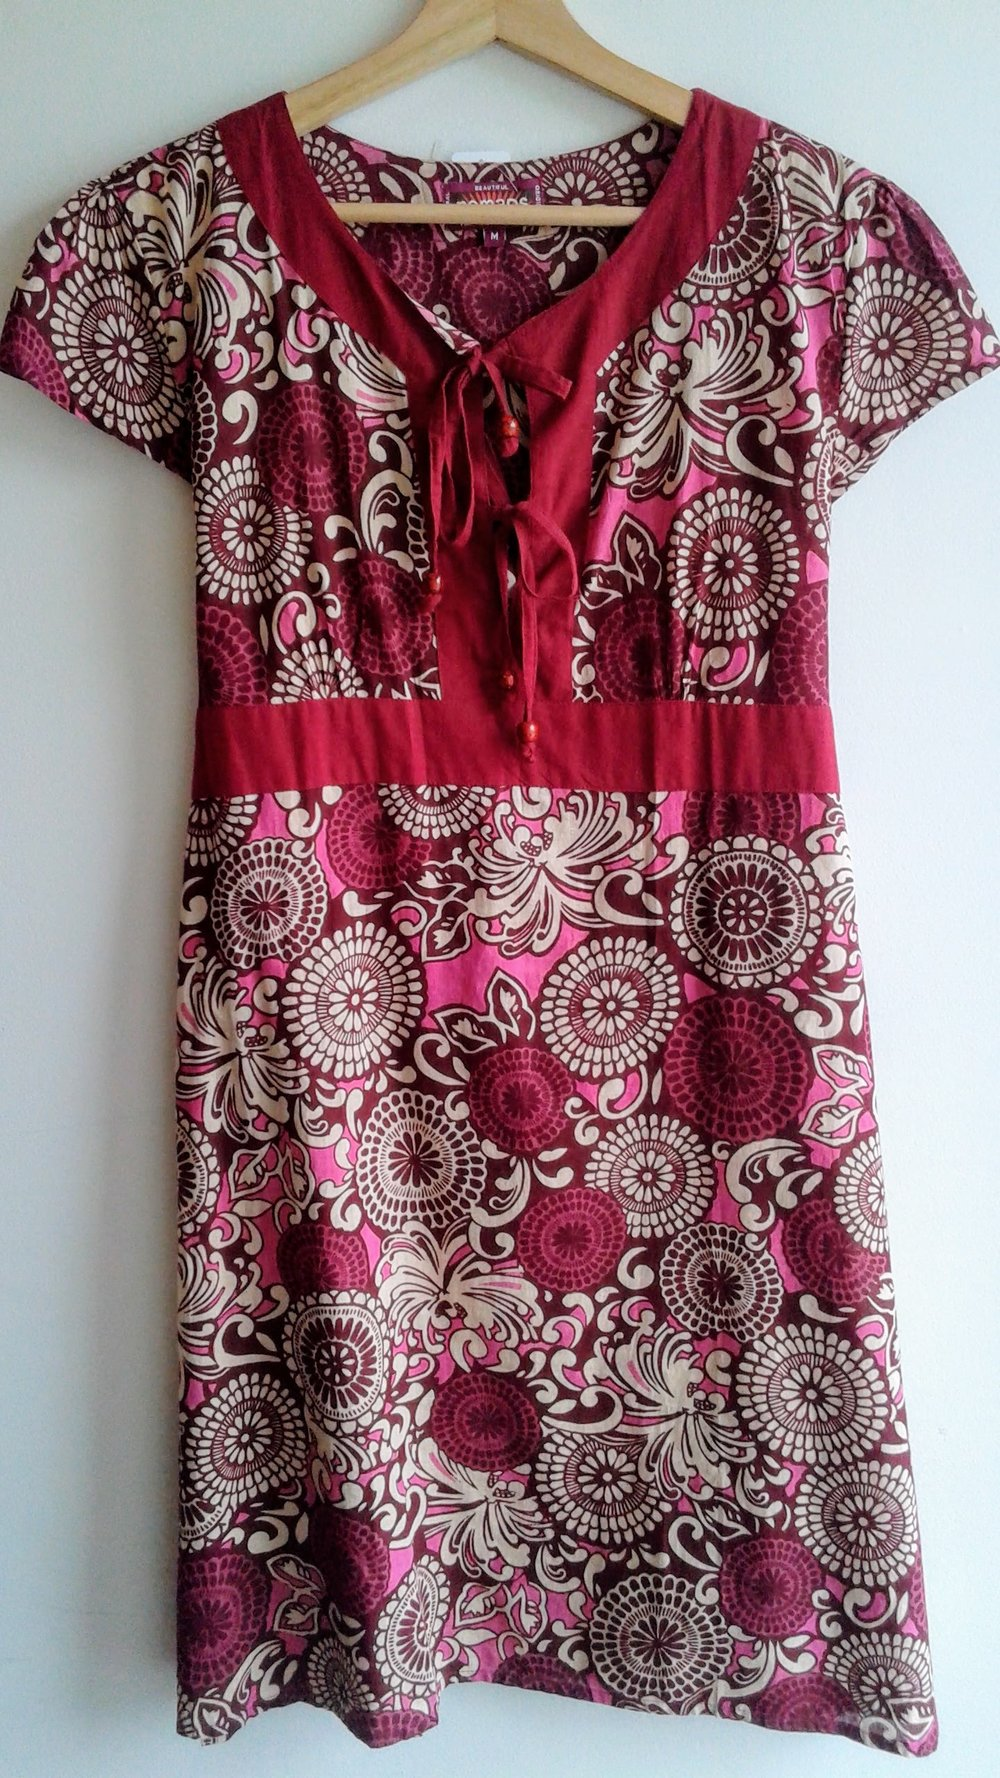 Nomad dress; Size M, $26